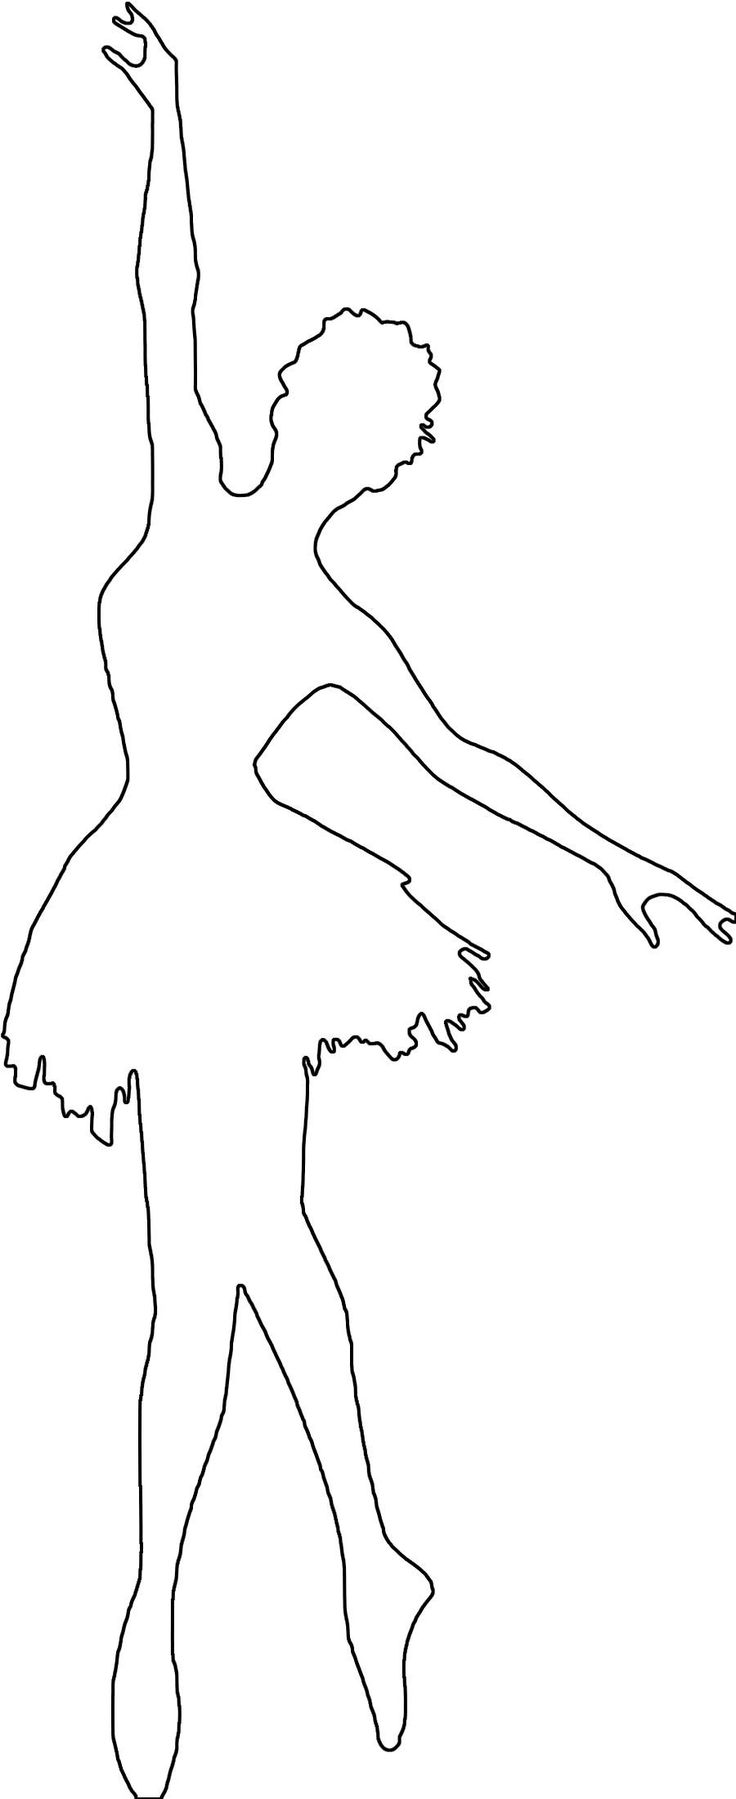 Image result for ballerina silhouette coloring pages